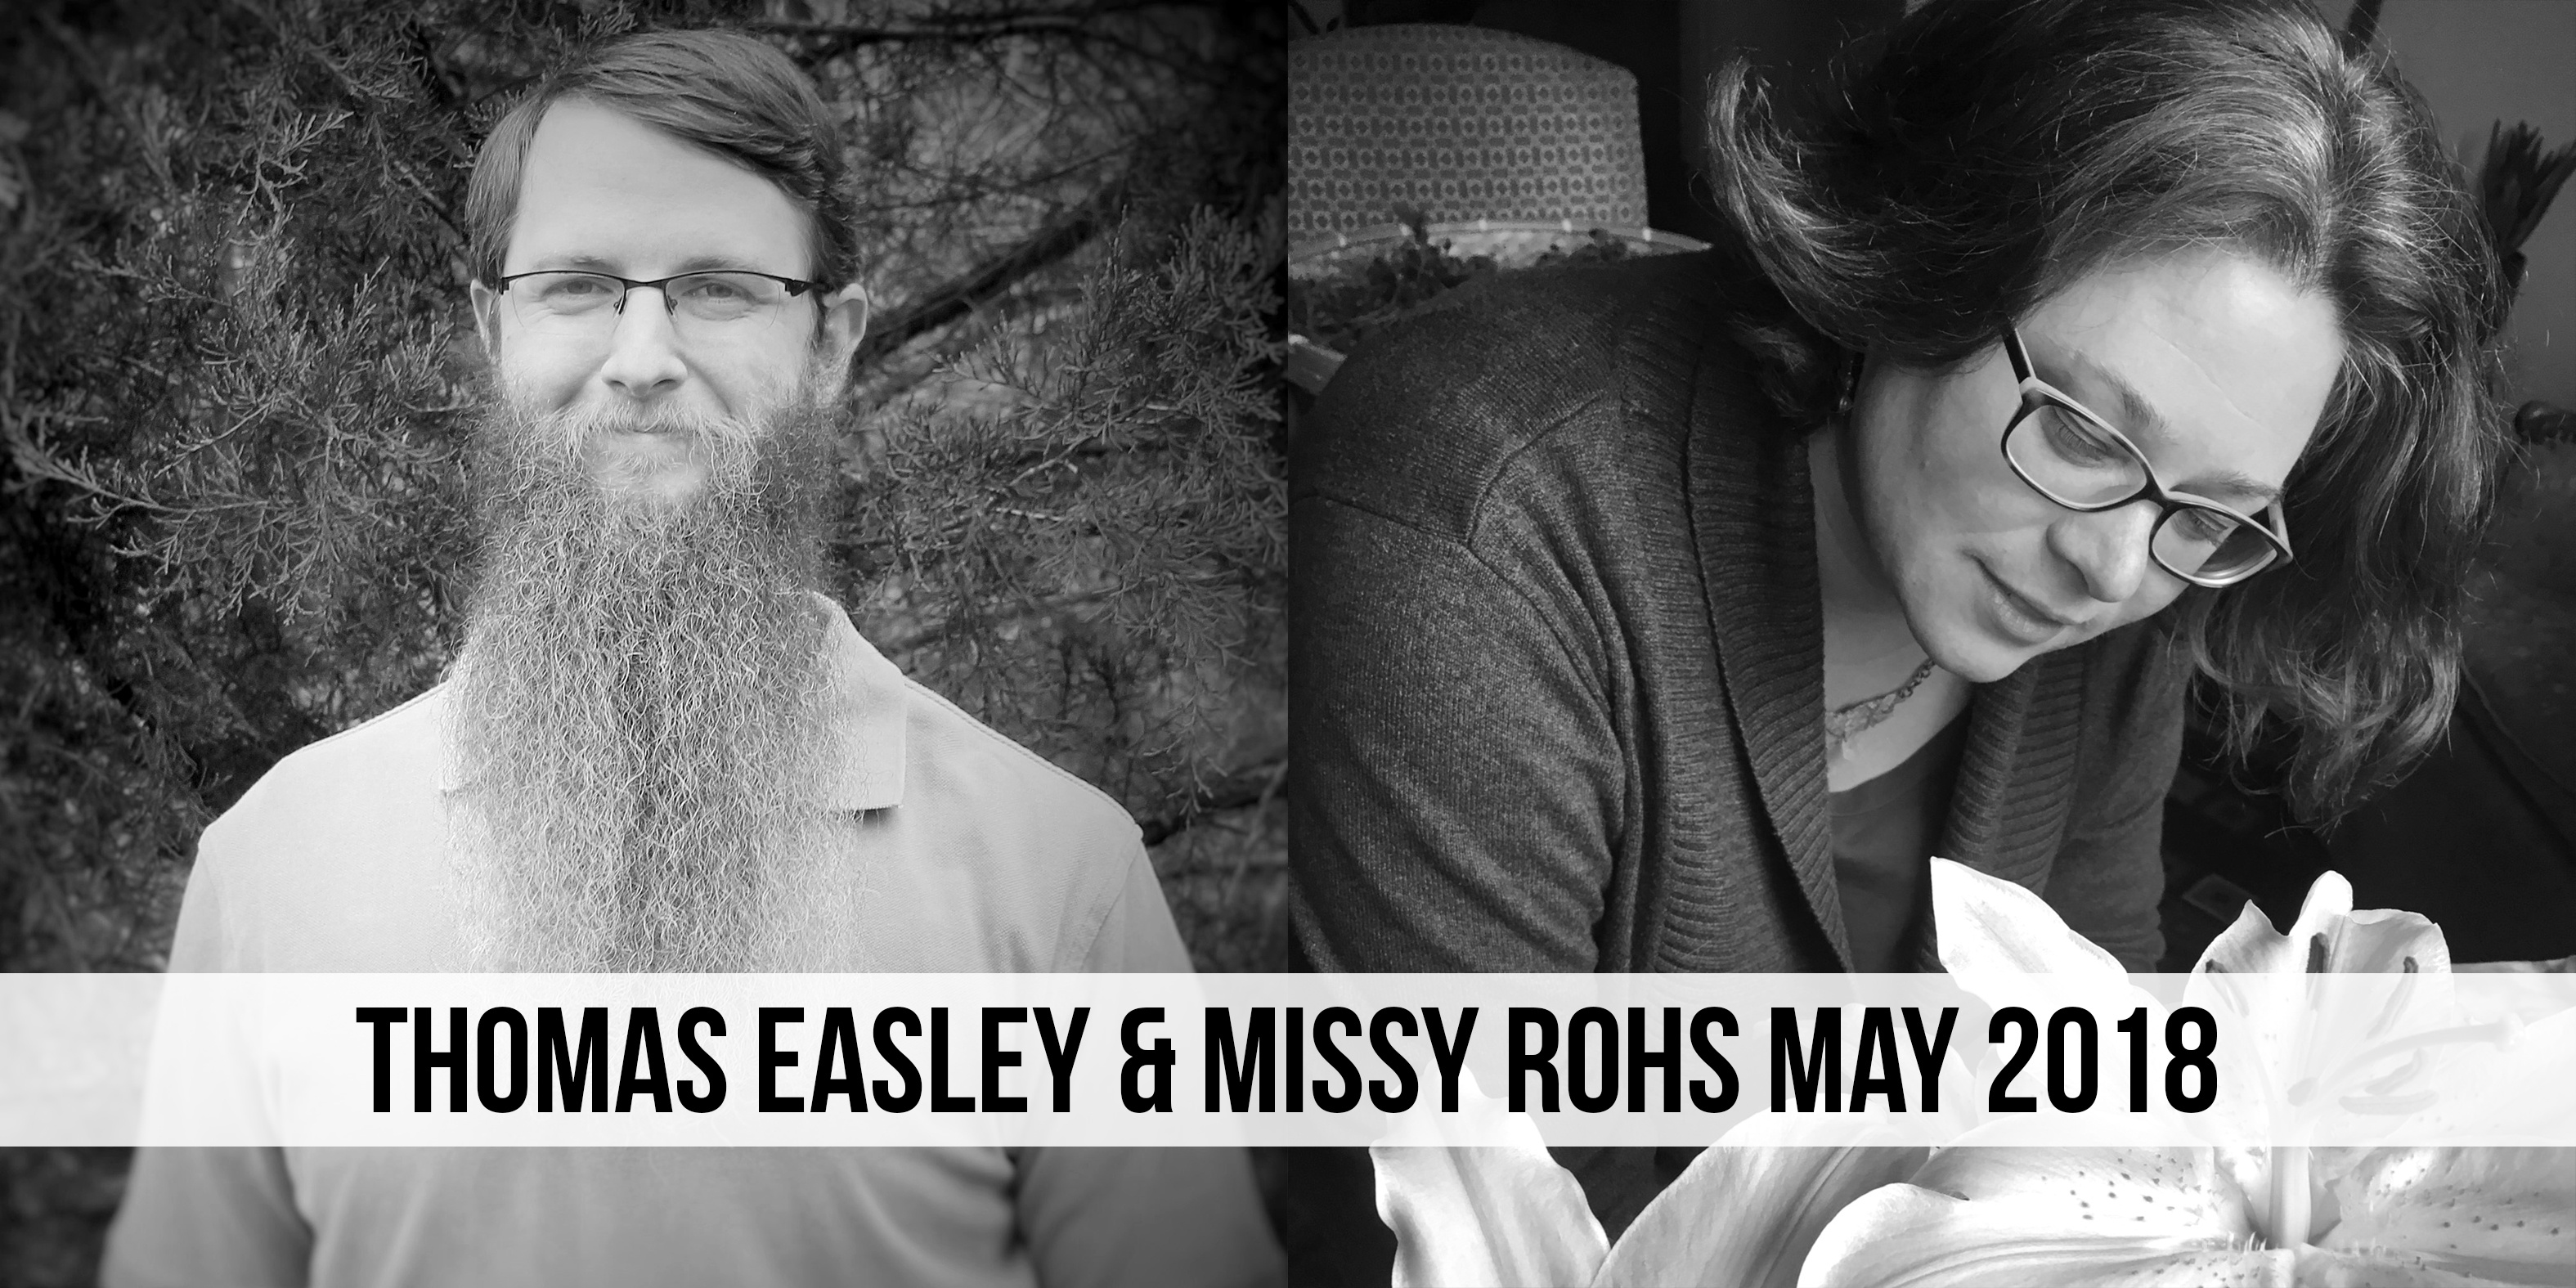 Thomas Easley & Missy Rohs May 2018